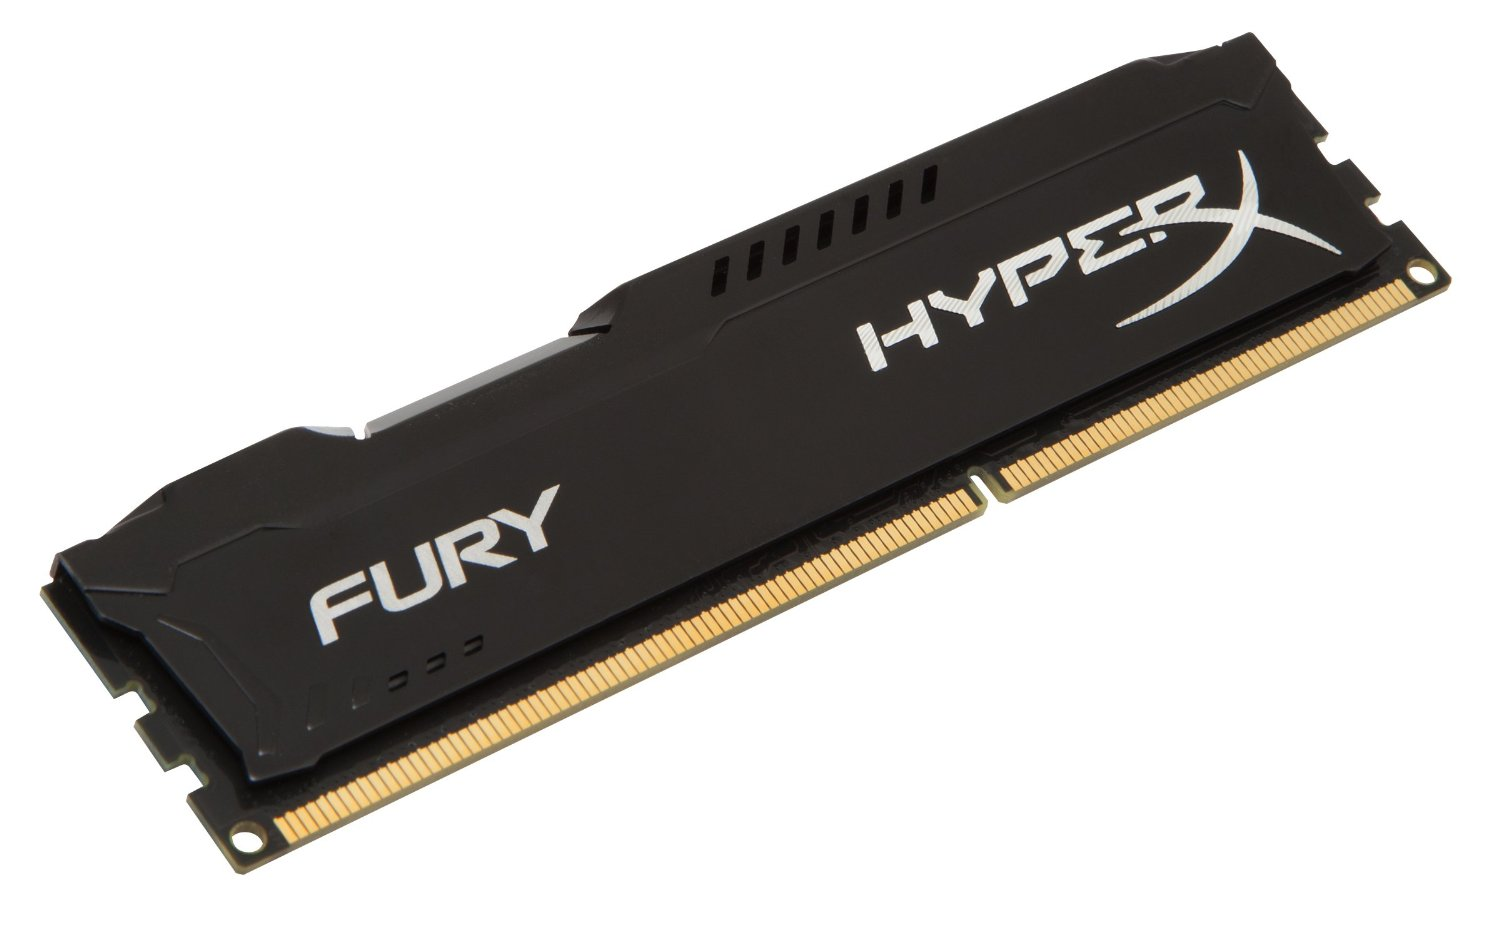 Ram Kingston 4GB Bus 1600MHZ DDR3 Dimm HyperX Fury Black